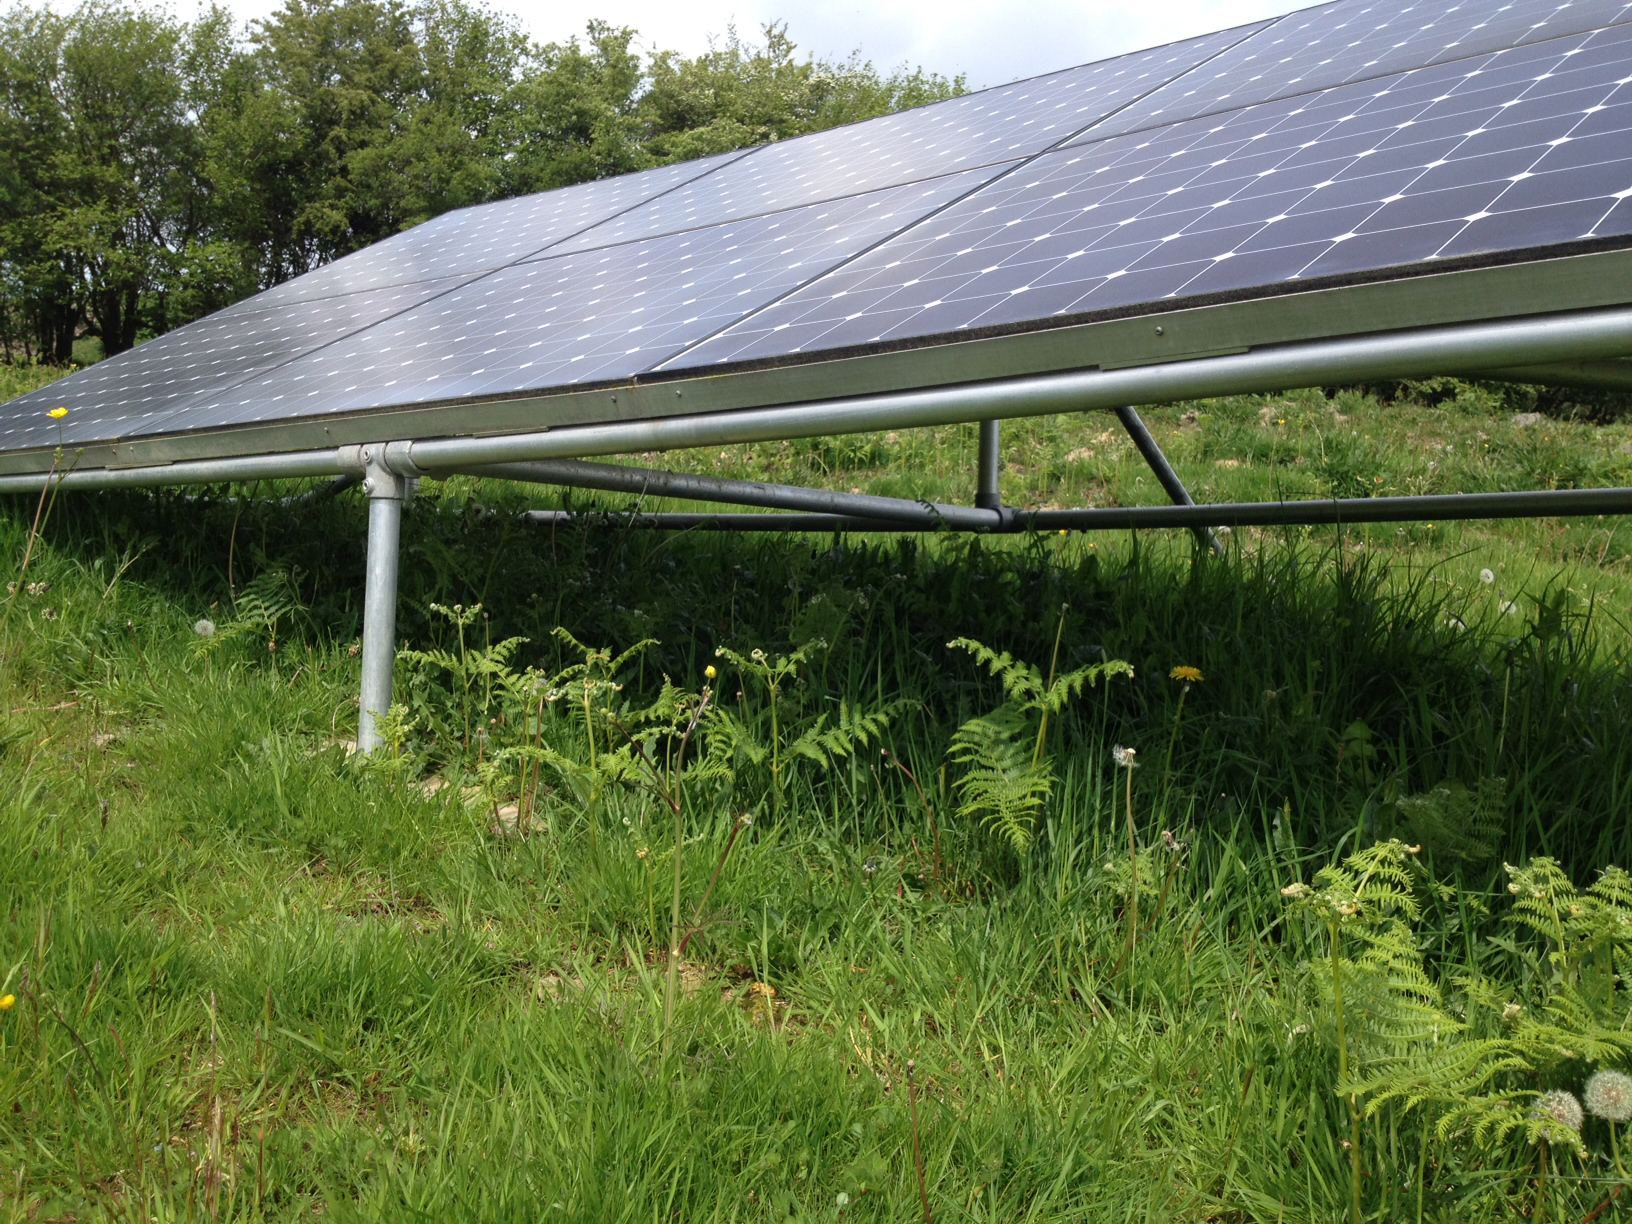 Solar Panels In Woodlands And Fields Are They Good Or